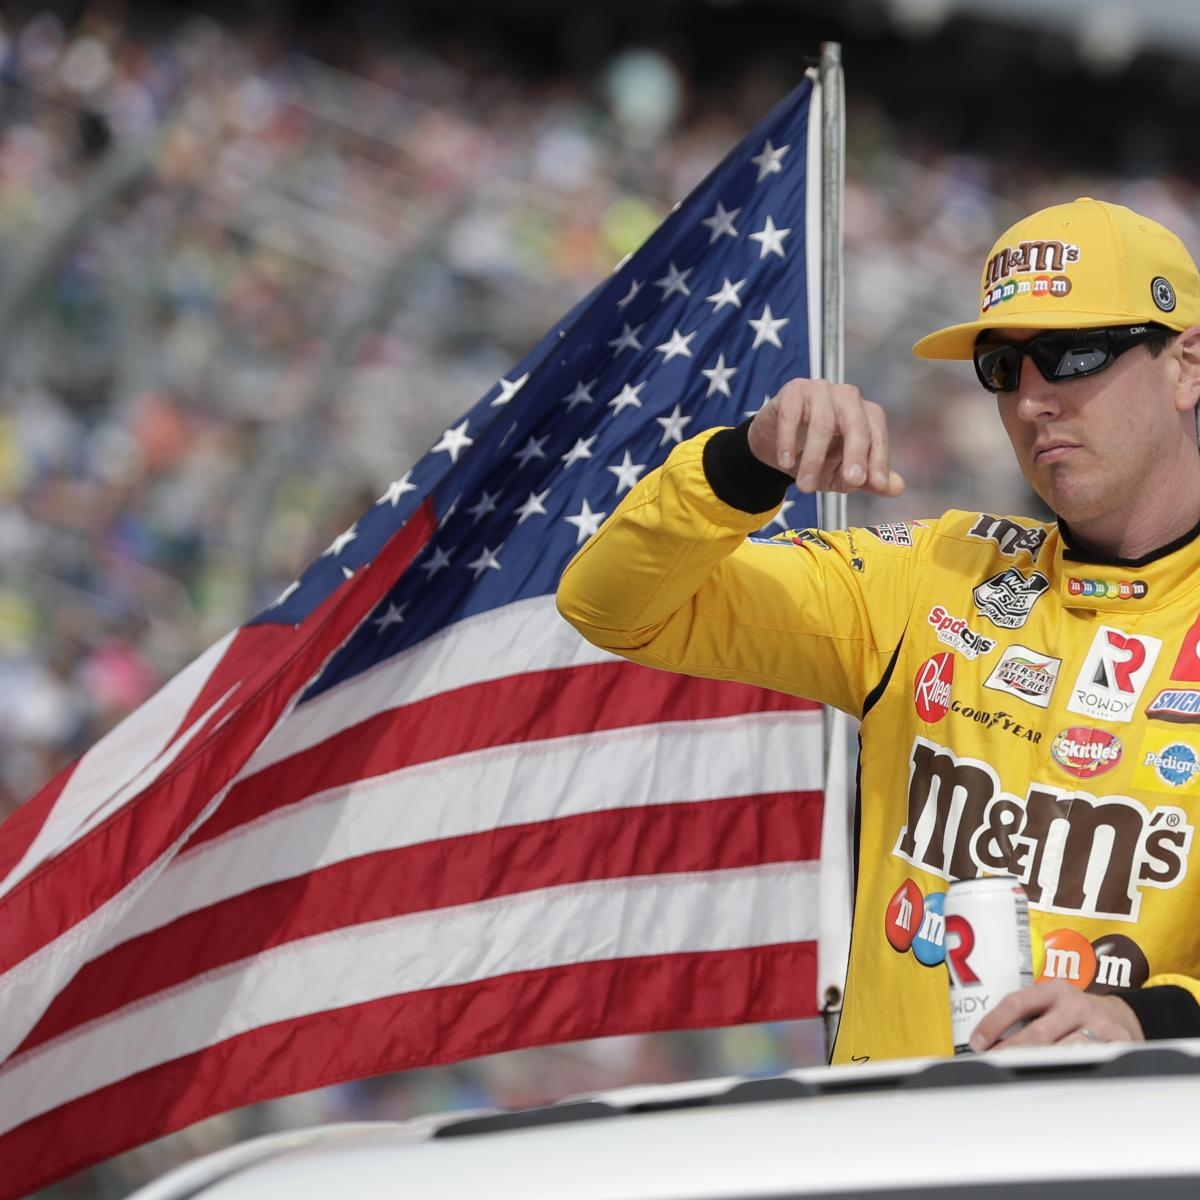 NASCAR at Las Vegas Qualifying Canceled, Kyle Busch Dropped to Rear of Grid